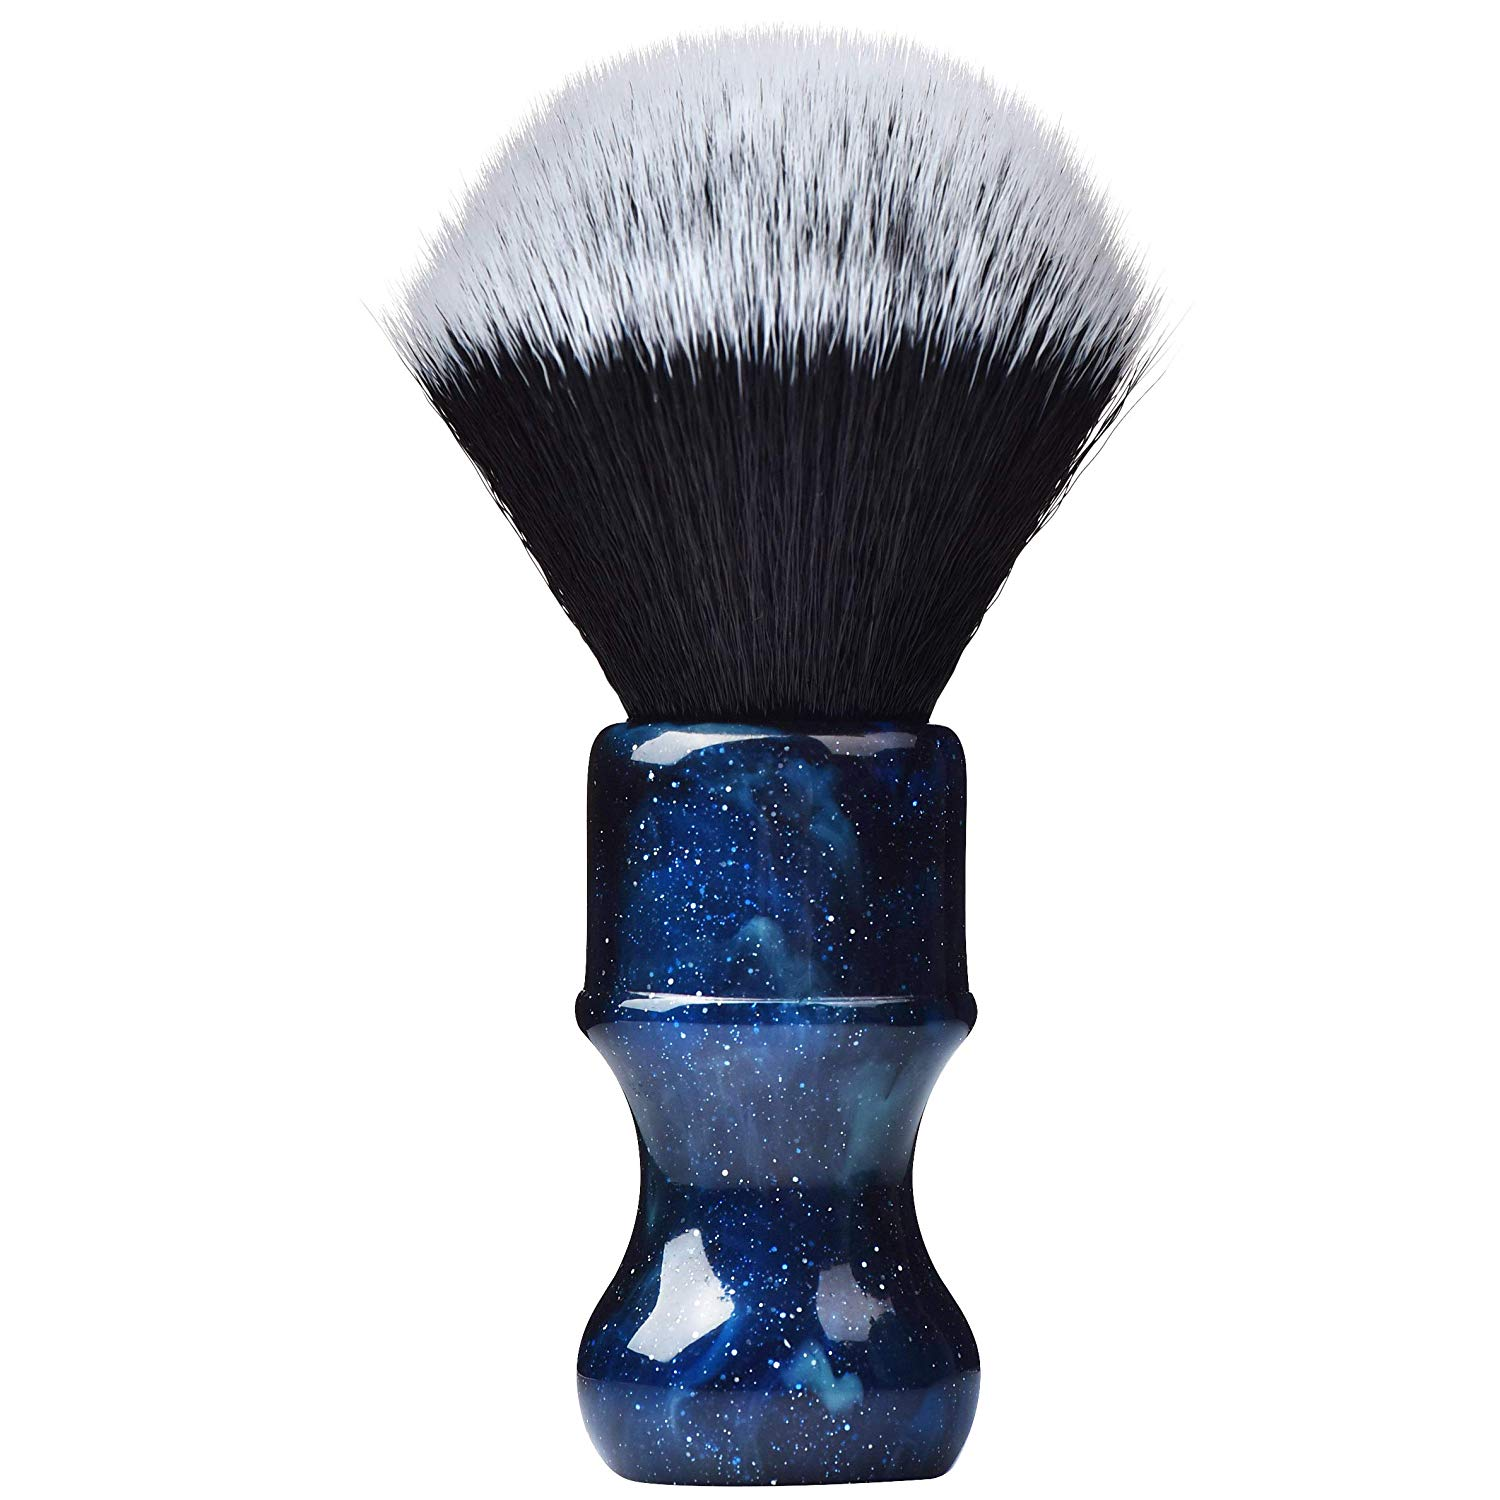 Synthetic Shaving Brush, Shaving Kit